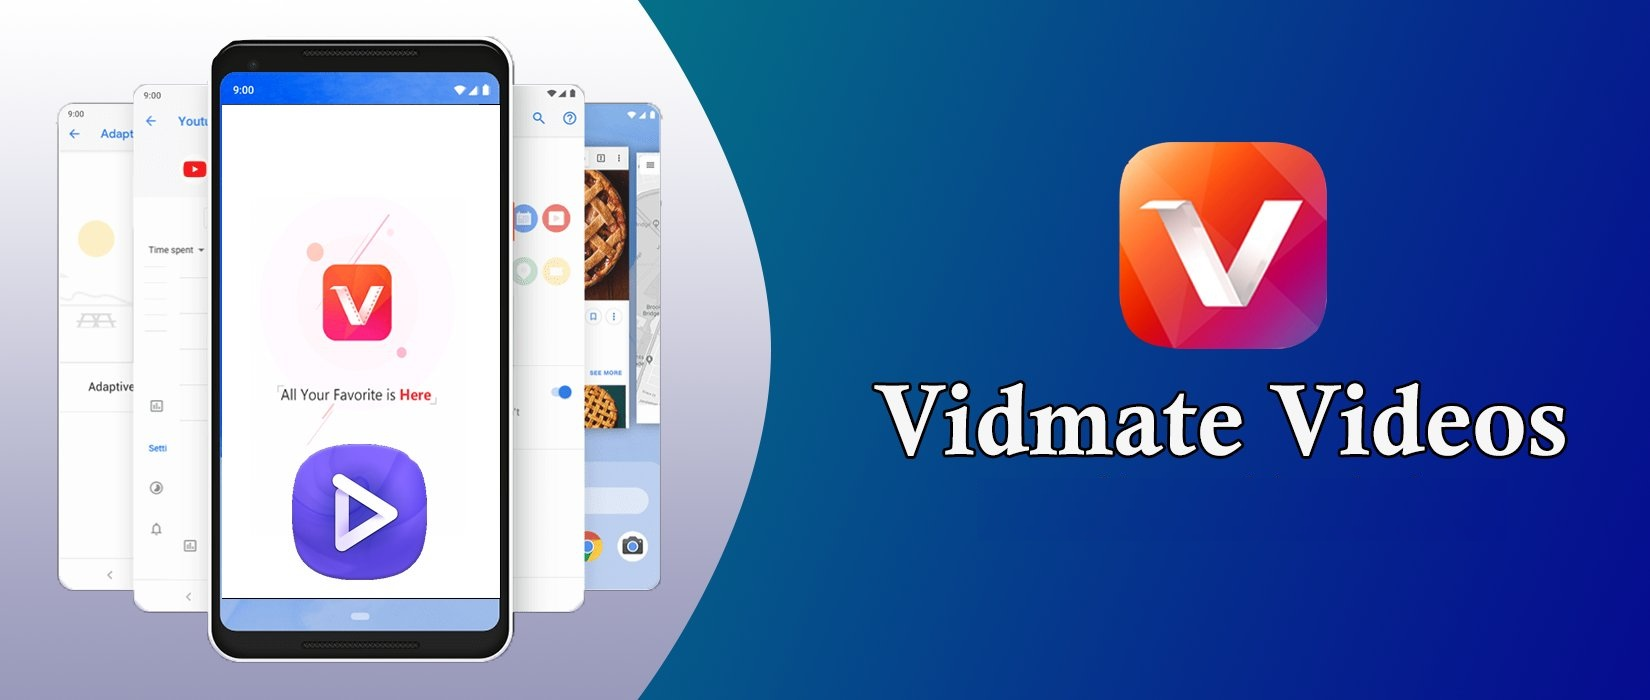 Vidmate Application is the Perfect Video Downloader